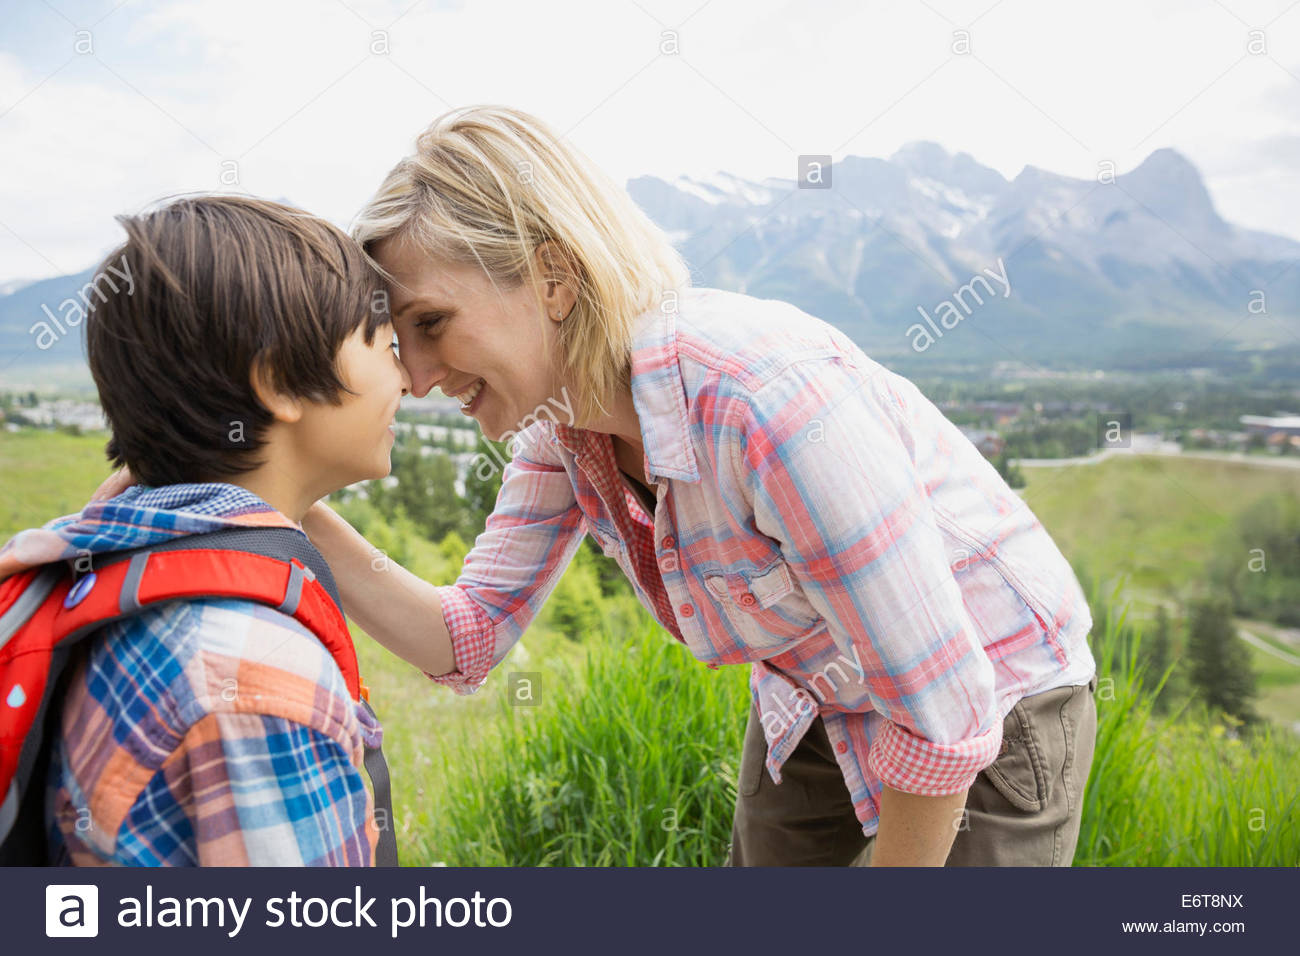 Mother and son touching noses on rural hillside - Stock Image